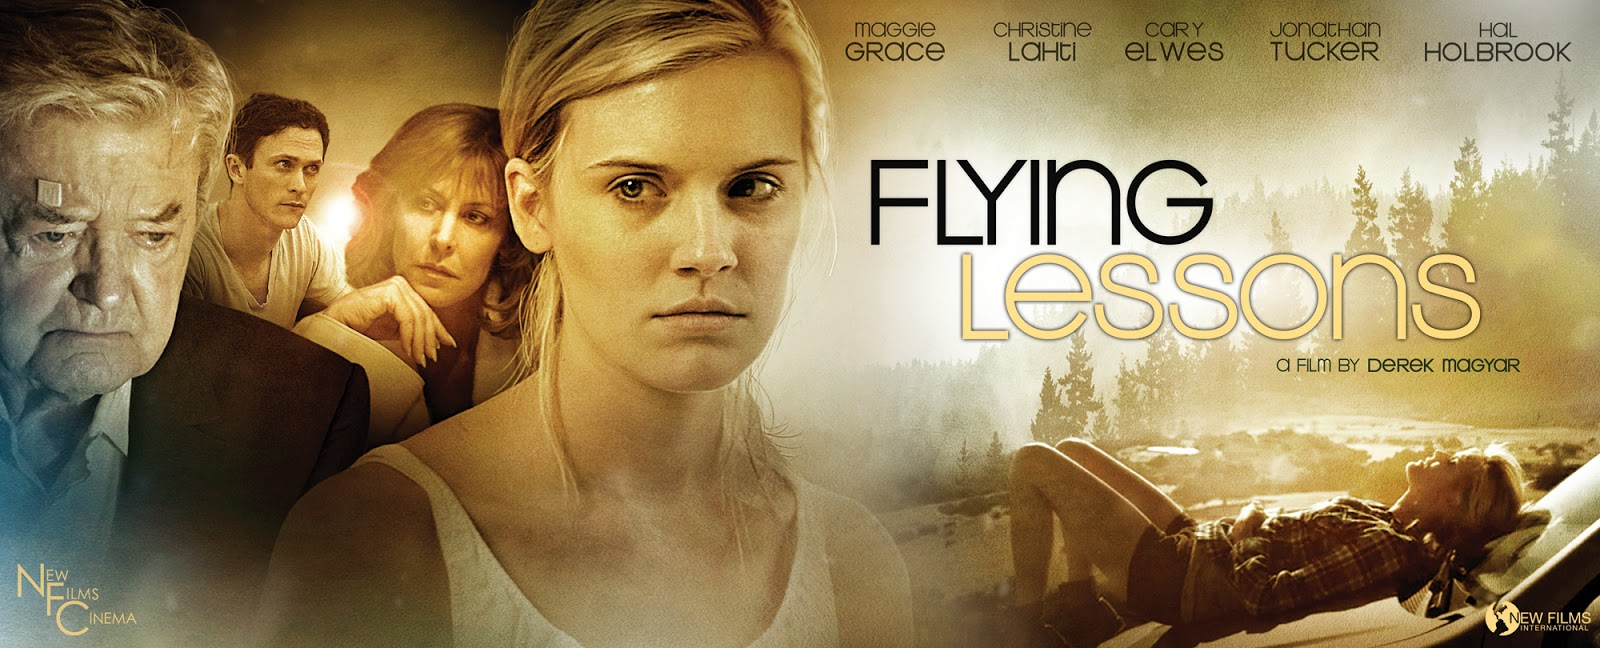 Flying Lessons (2012)